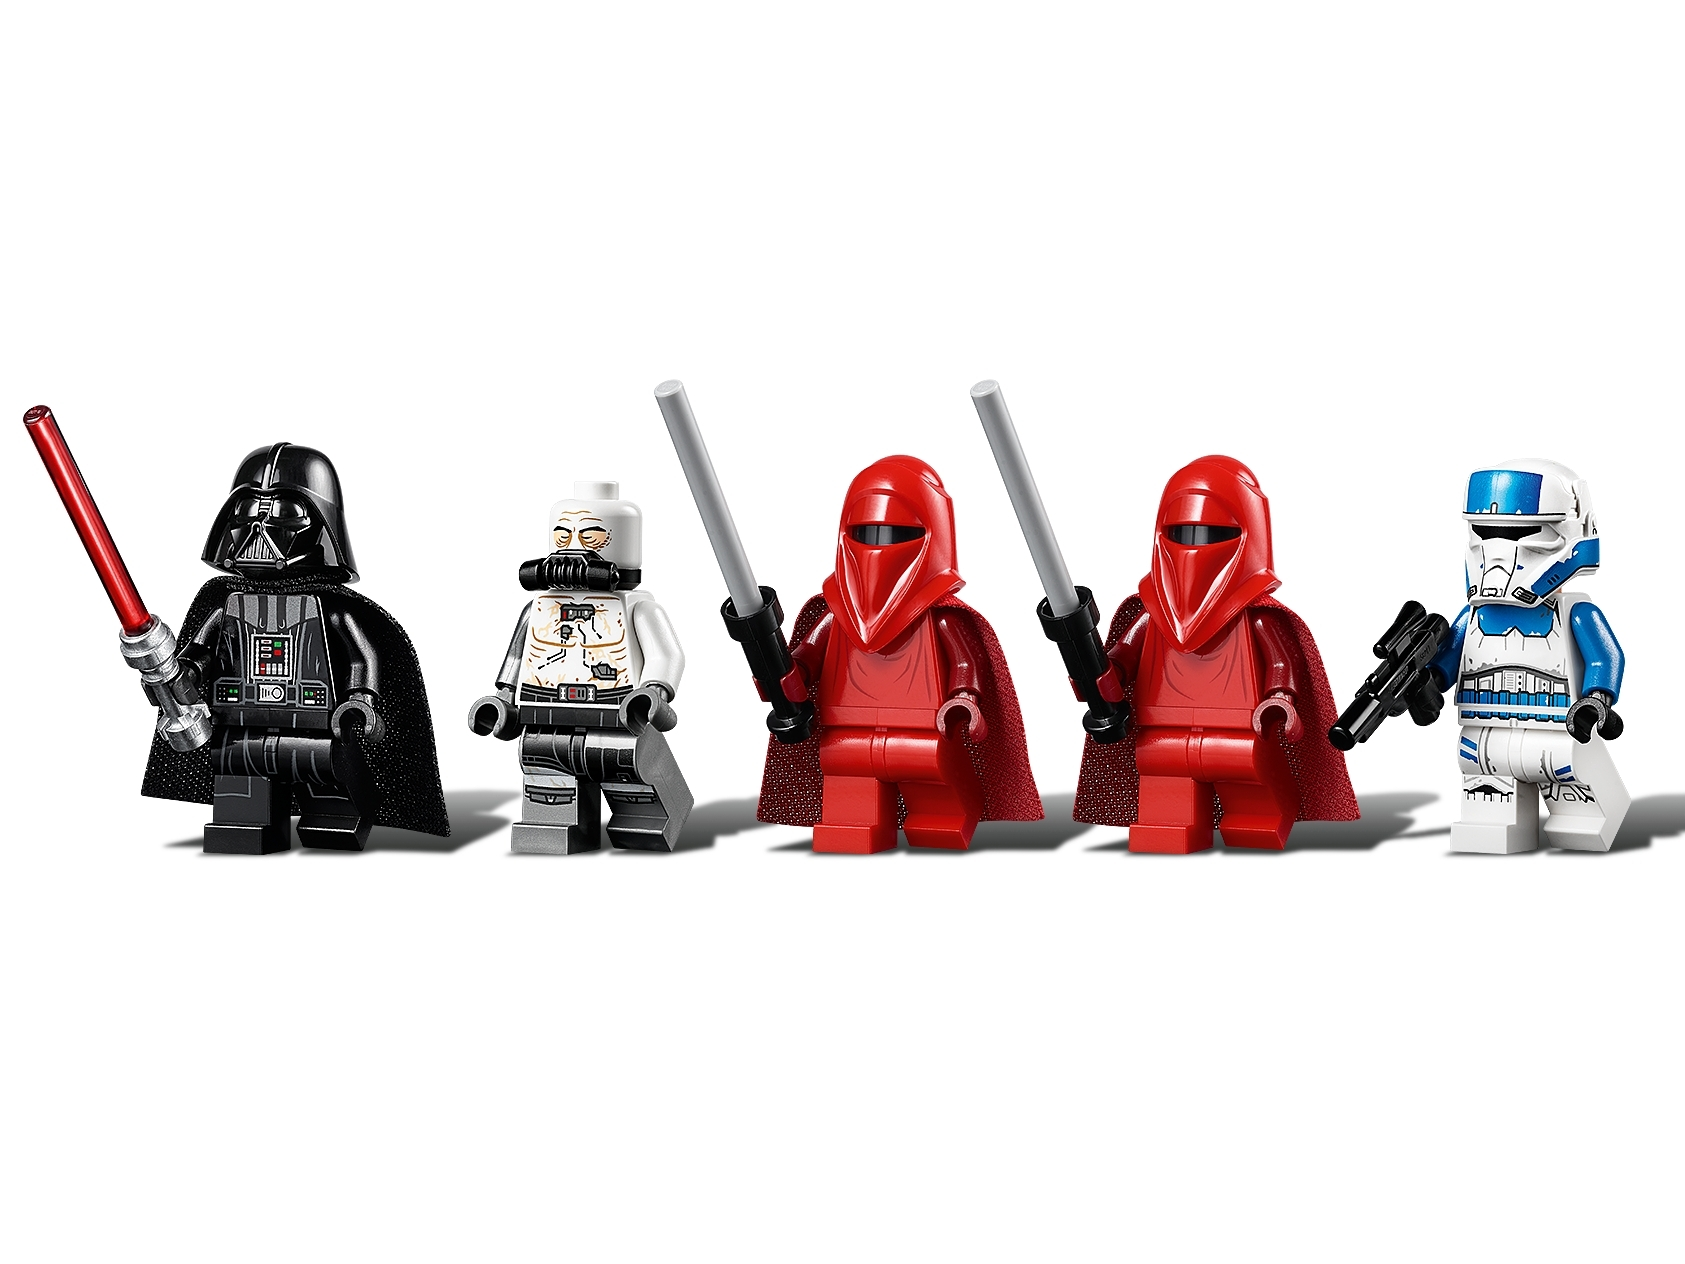 LEGO LOT OF 5 RED CAPE PIECES STAR WARS IMPERIAL GUARD ACCESSORIES CLOTH PCS